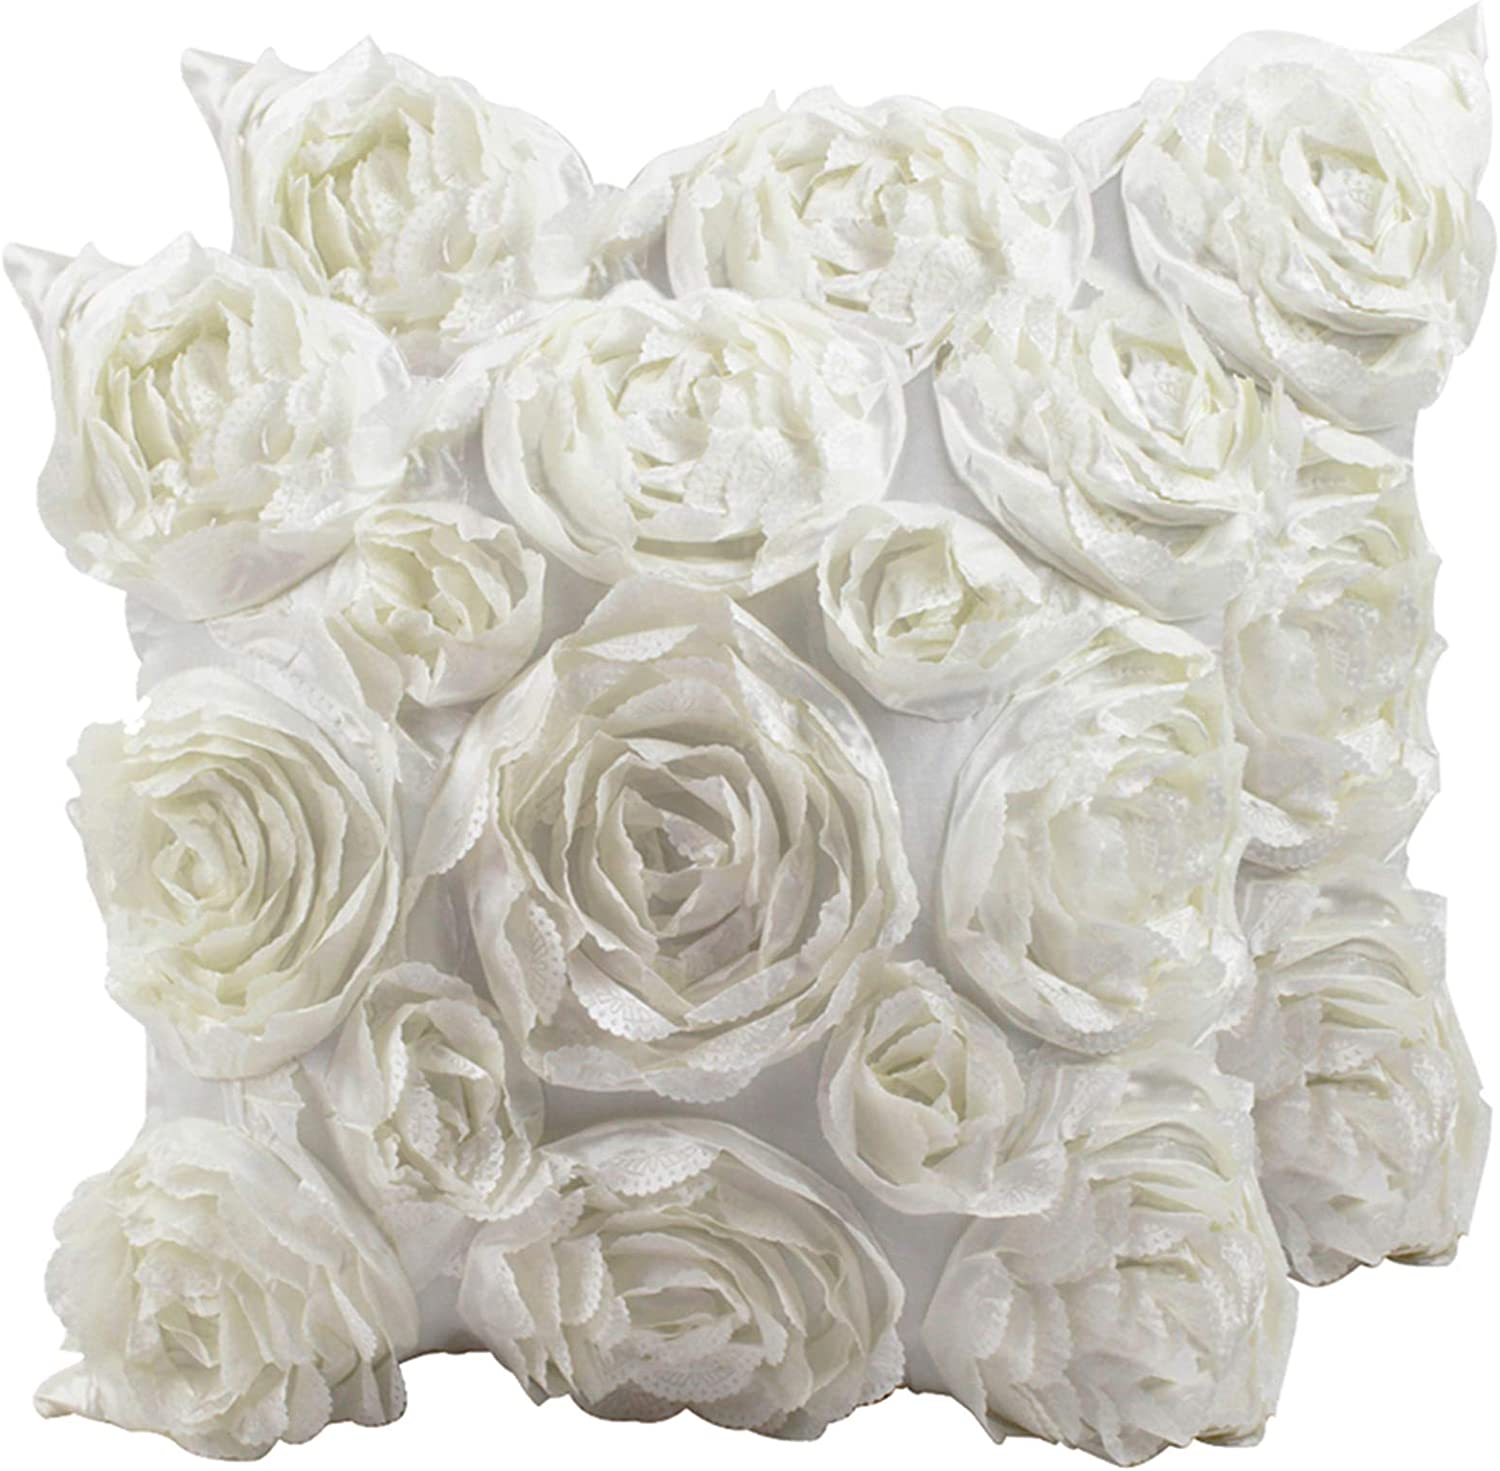 SeptCity Decorative Throw Pillow Covers for Couch Cushion Case, Romantic Love Satin Rose Wedding Party Home Decor, Home Gift (Set of 2) (Ivory White)